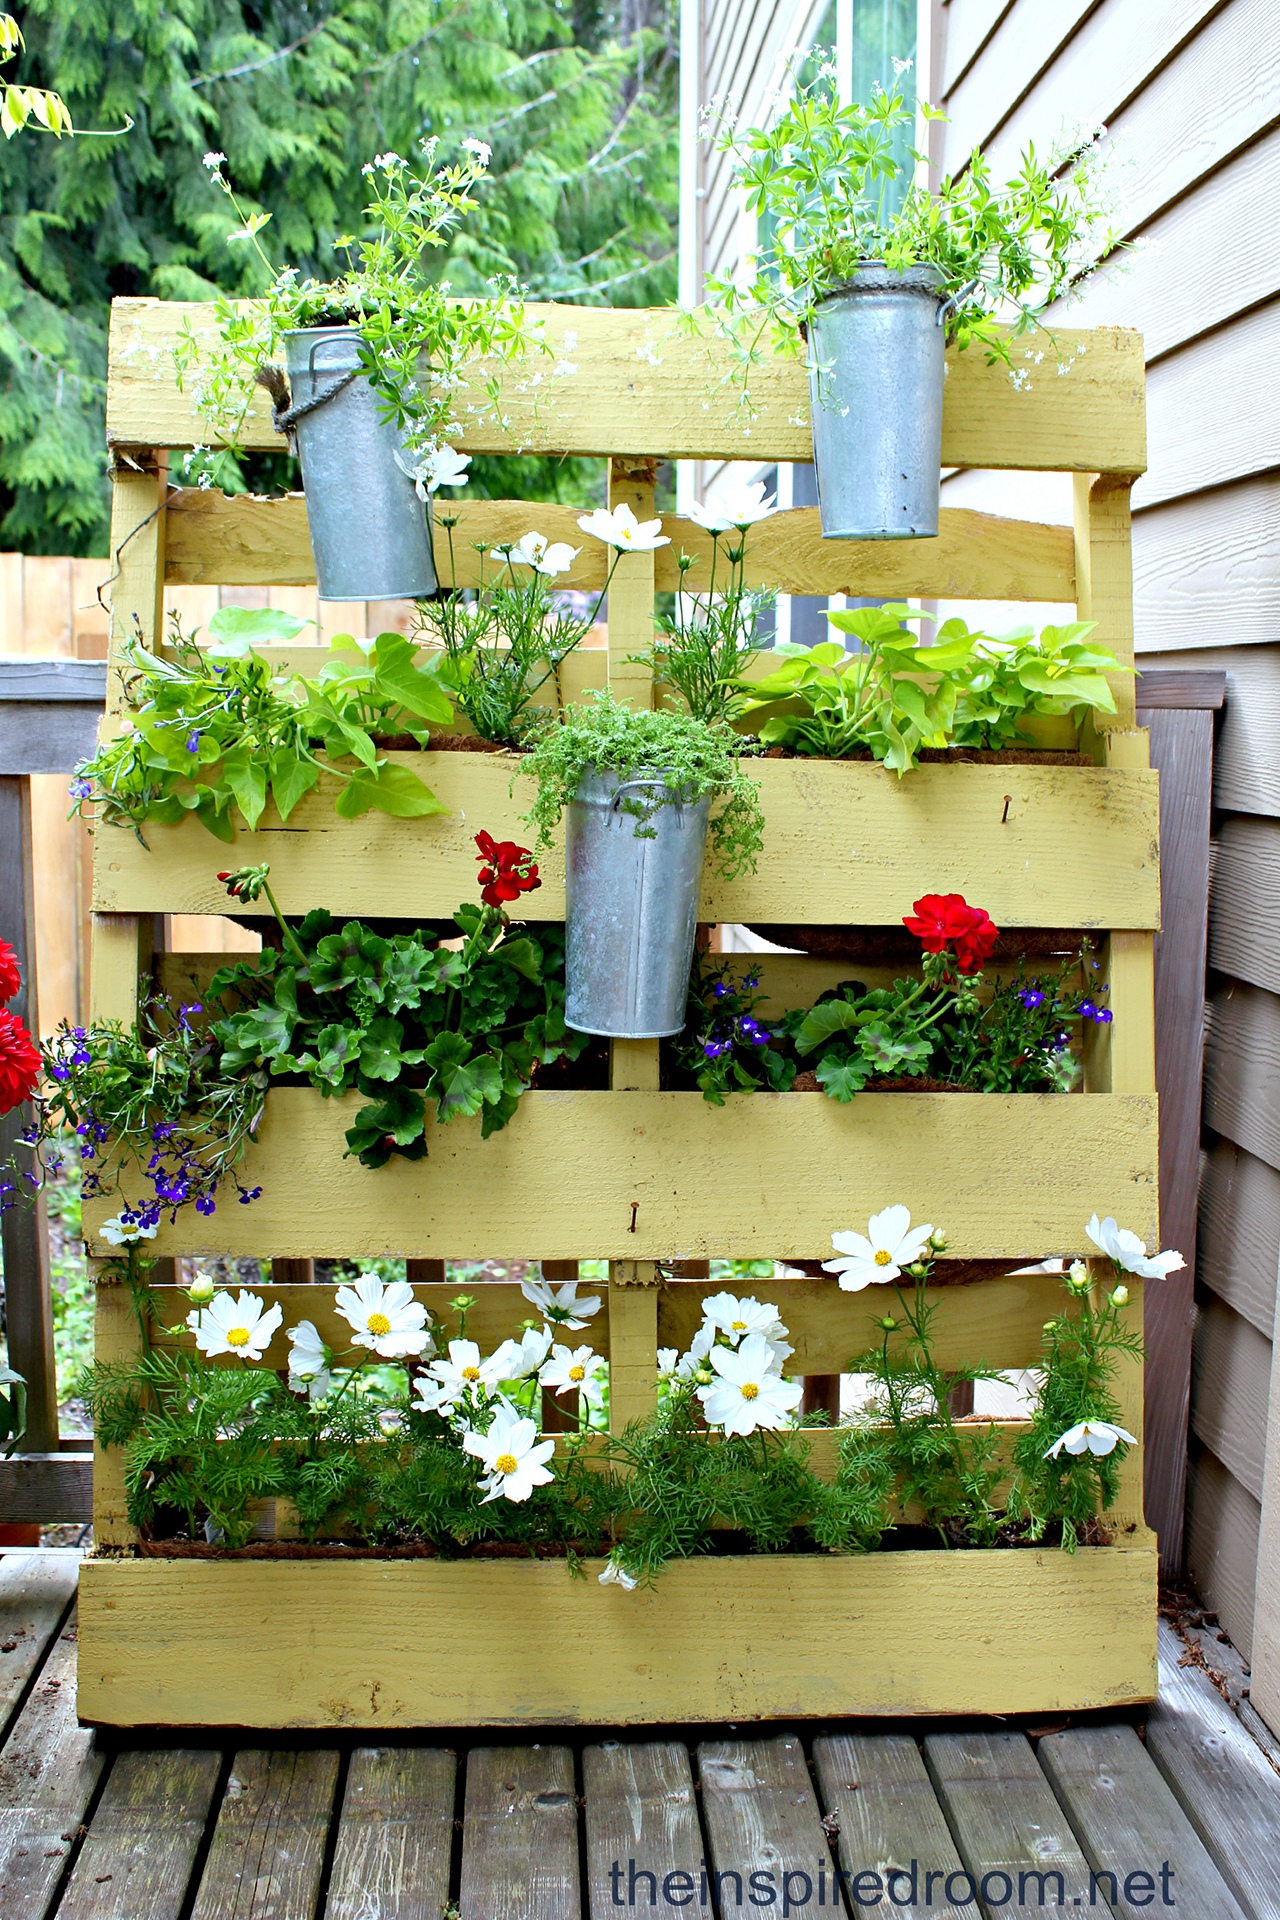 High Quality Take Pallet Gardening Vertical With This Simple Design